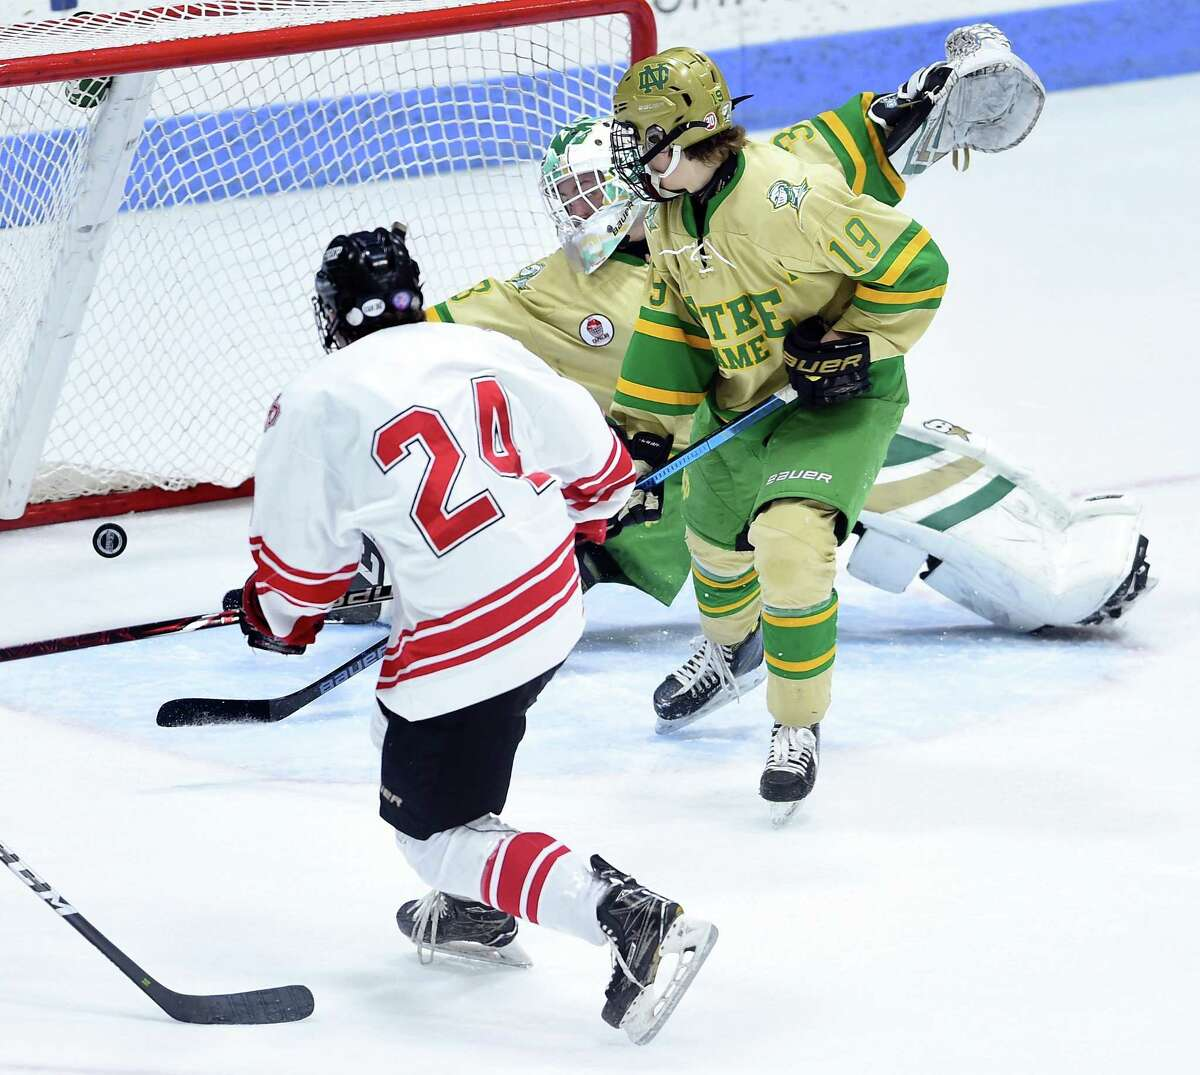 Fairfield Prep's Thomas Quinn, left, scores against Notre Dame-West Haven goalie Connor Smith in the first period of the CIAC Division I ice hockey final at Ingalls Rink in New Haven on Tuesday.